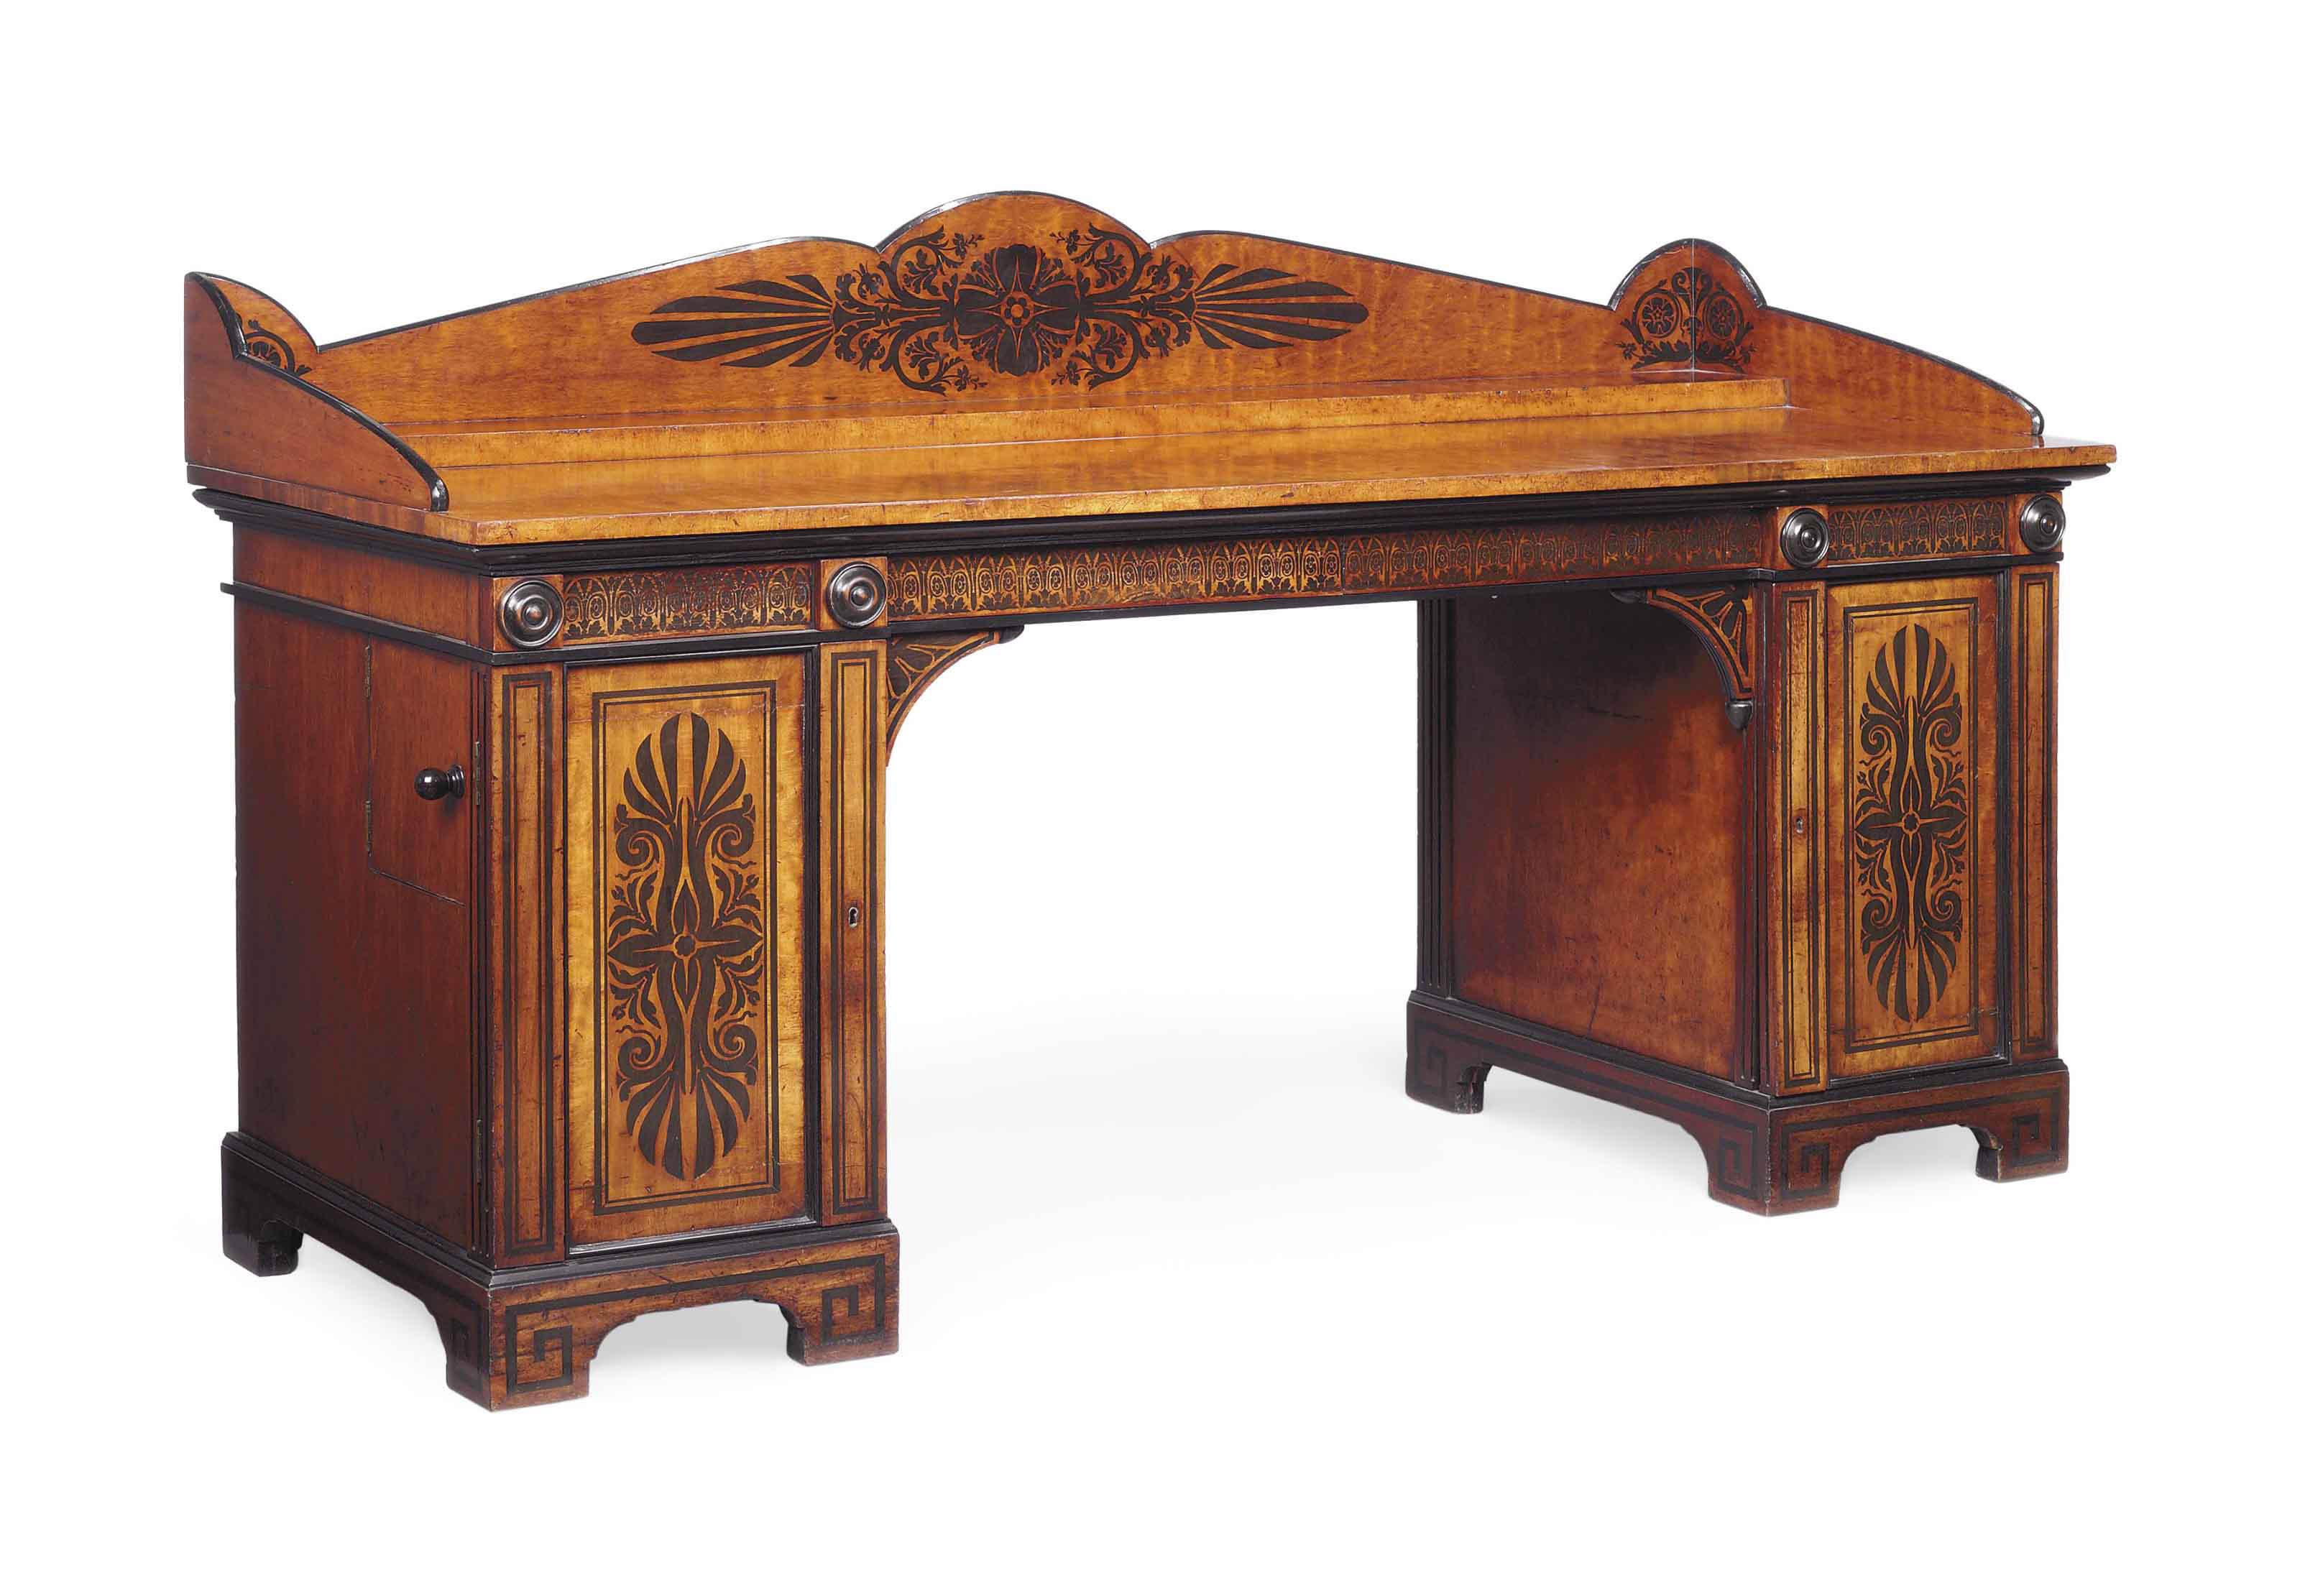 A REGENCY EBONY INLAID MAHOGANY AND FIDDLEBACK PEDESTAL SIDEBOARD